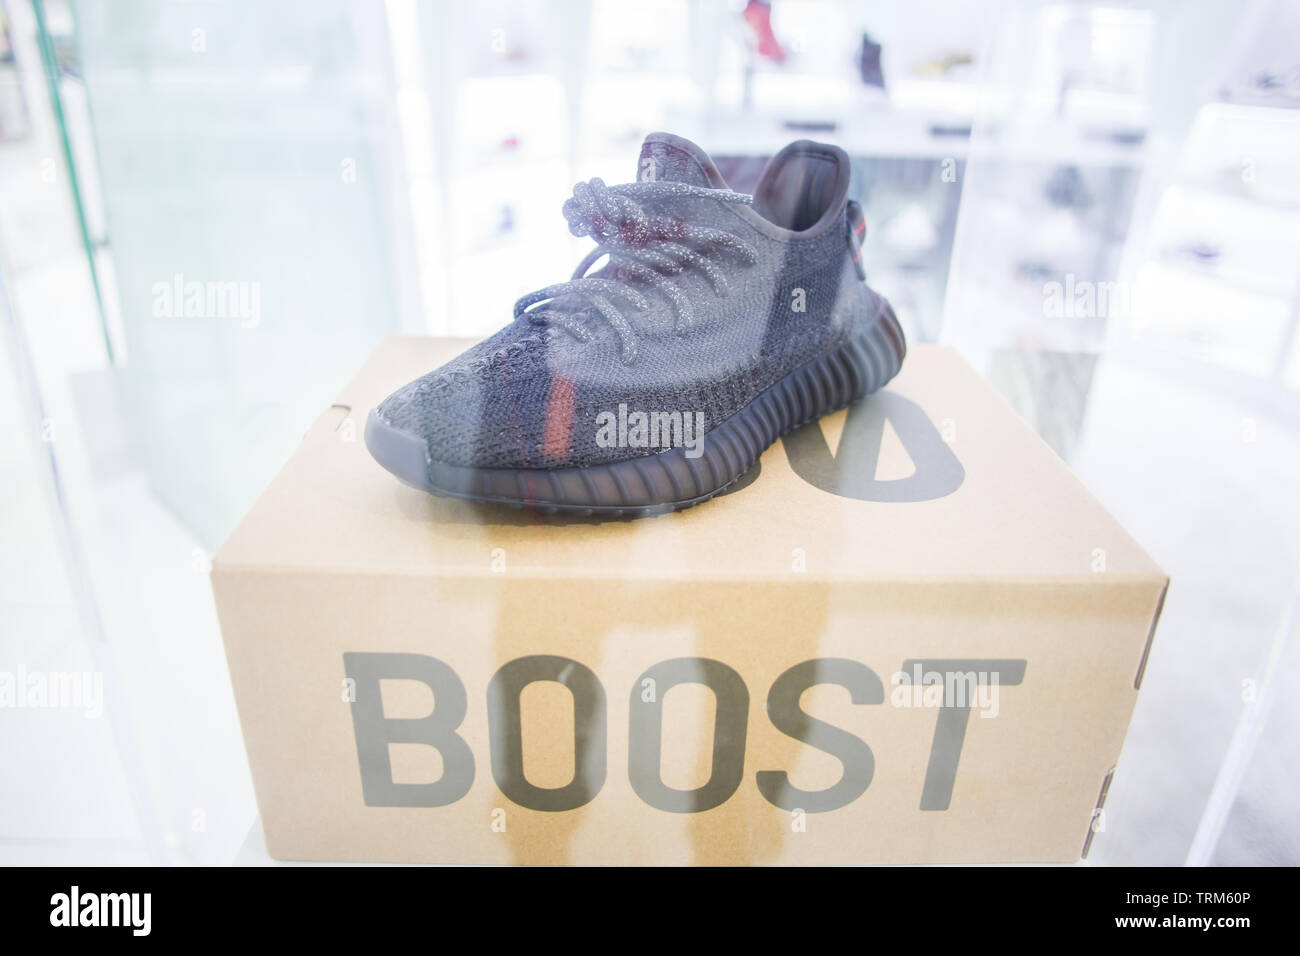 f2004de8 Release of Adidas Yeezy Boost 350V2 black reflective shoes, only 20 pairs  available in Singapore